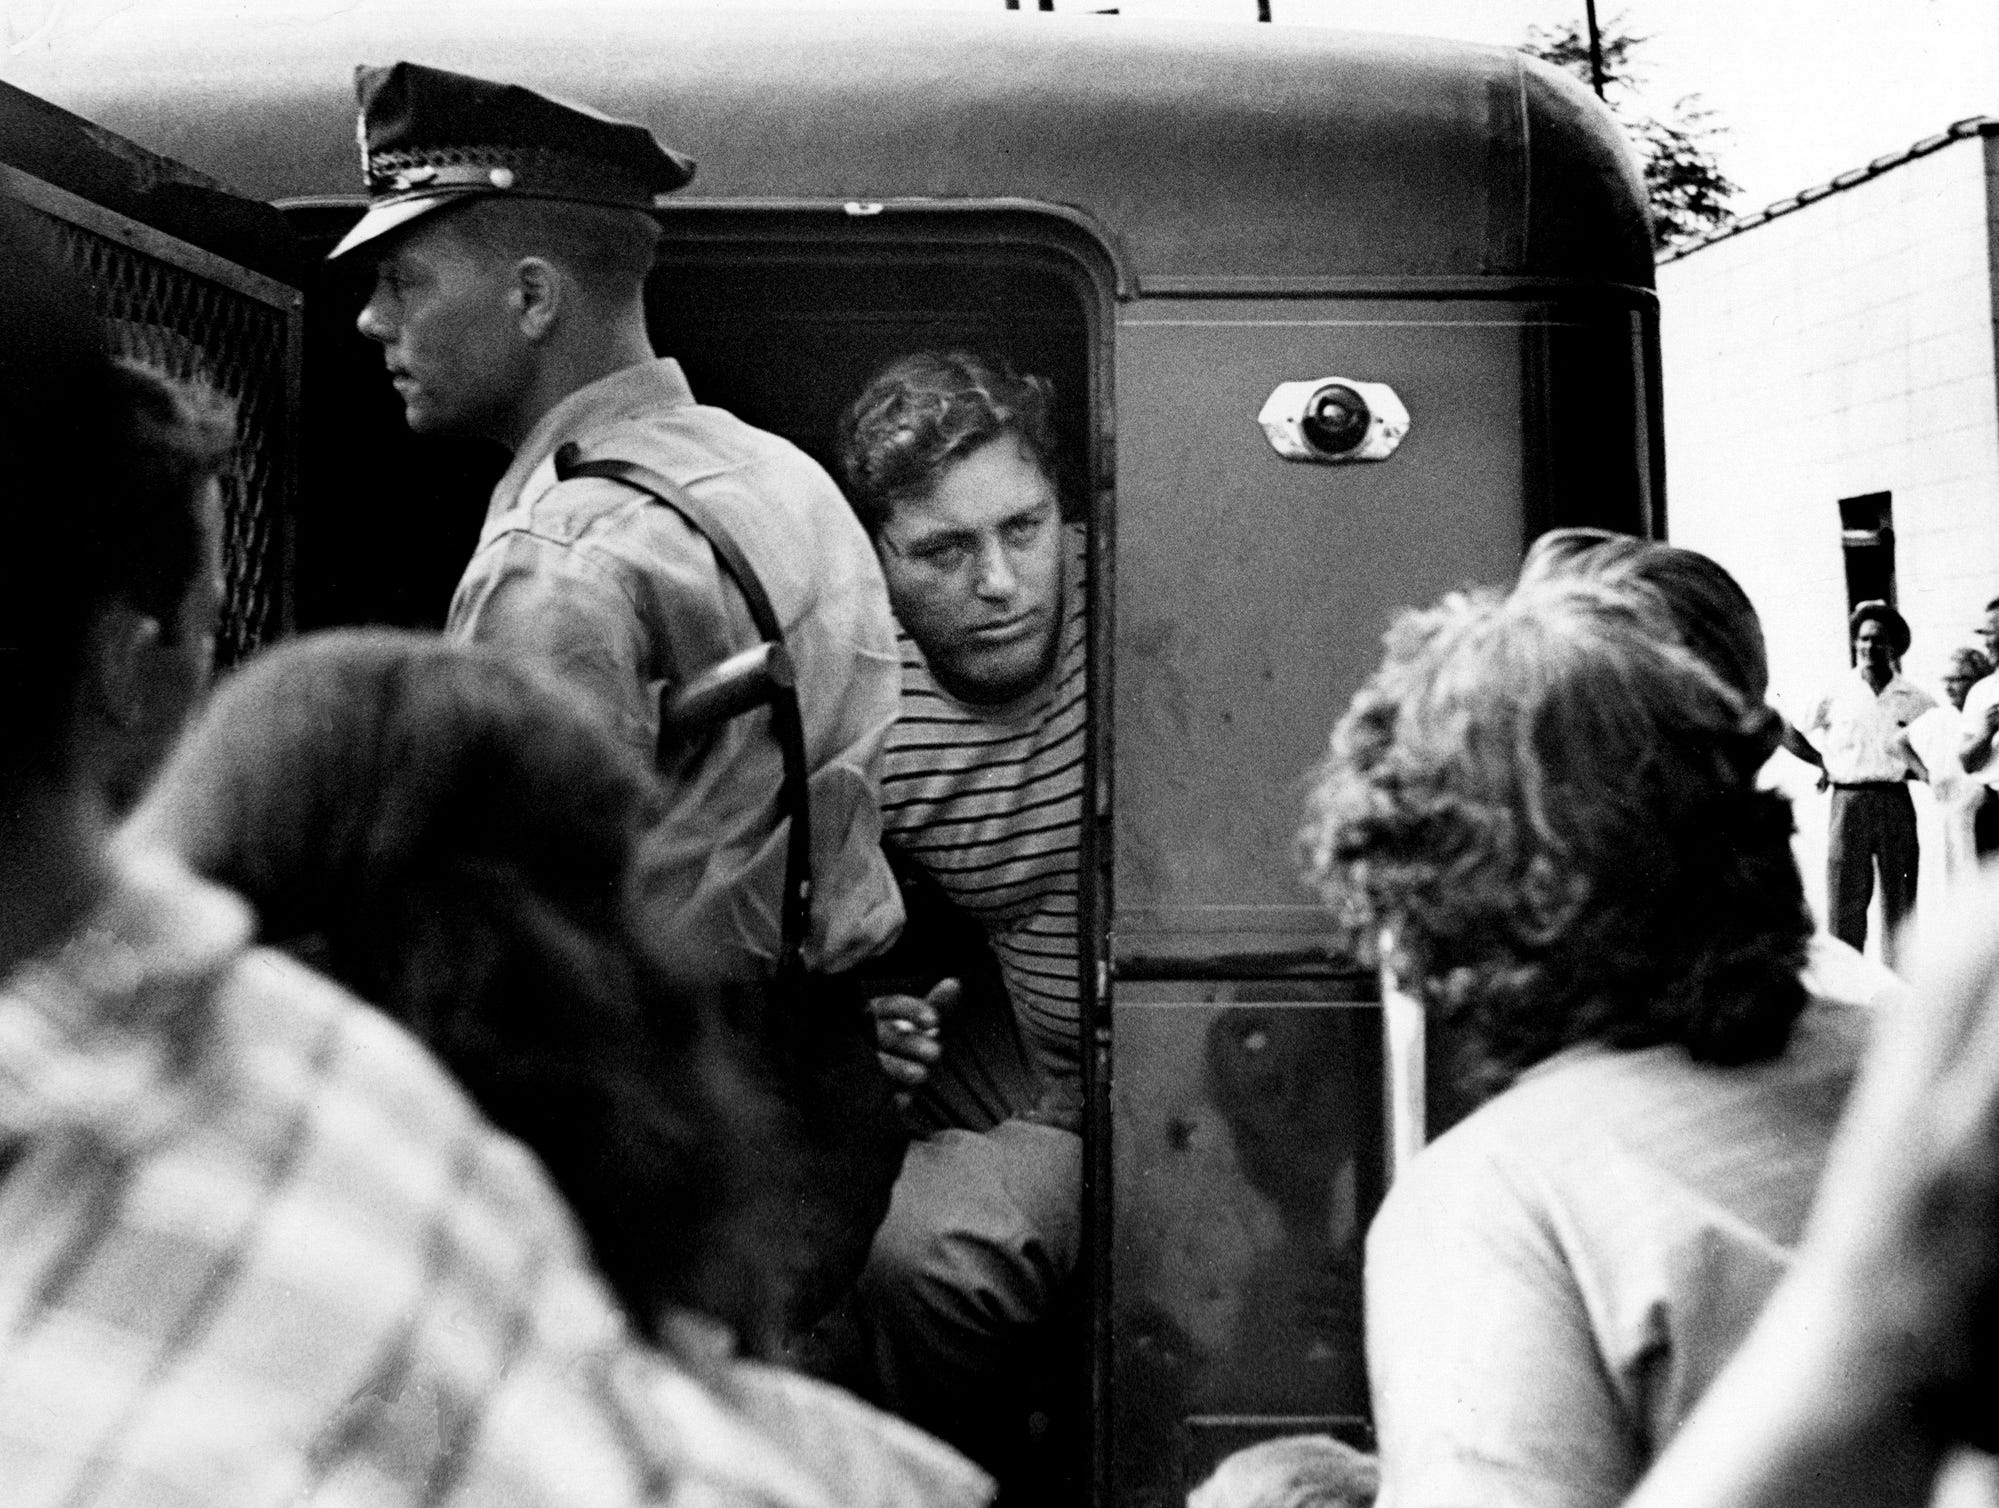 G.H. Akin, center, peers from the back of the paddy wagon before he was taken into city court after his arrest for disorderly conduct Sept. 10, 1957. Nashville police clamped down on segregationist demonstrations by hauling 19 other demonstrators to jail on the second day of school.